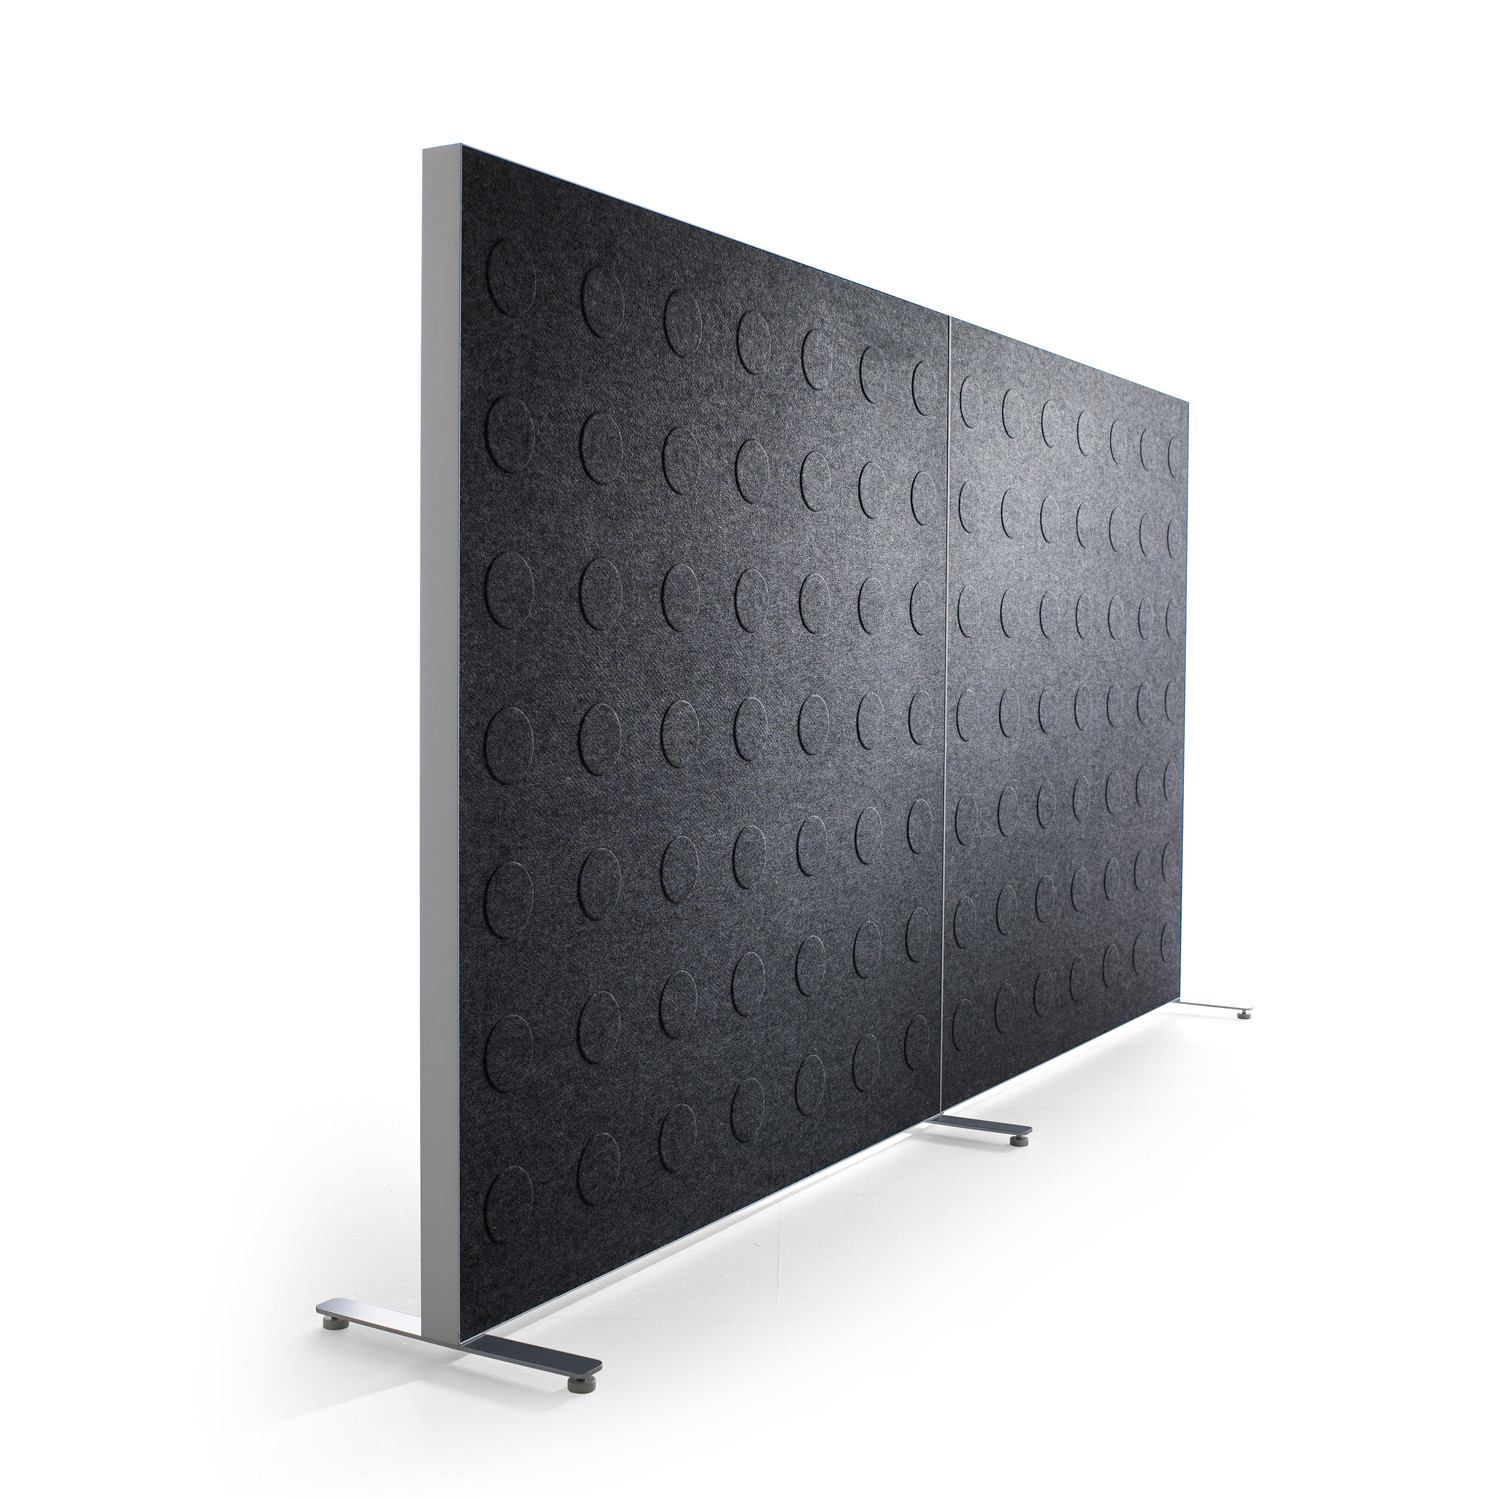 Alumi Freestanding Screens